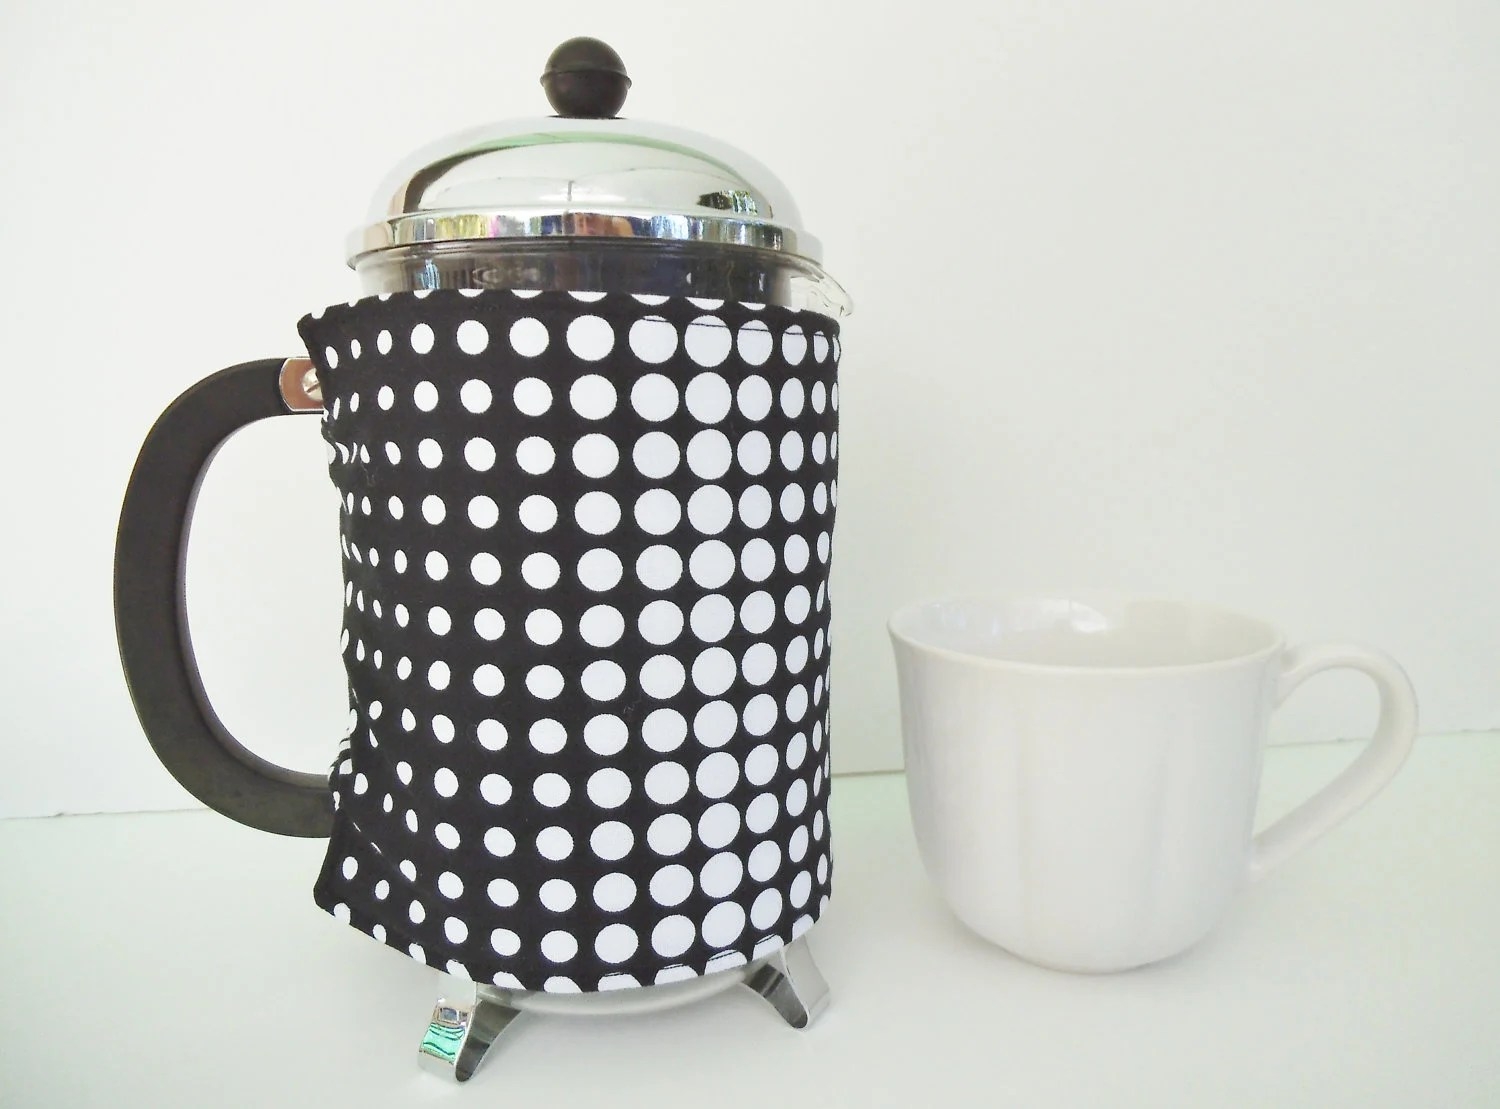 Large French Press Cozy - White/Black Dots (12cup/51oz1.5L) - CharlieRiggs